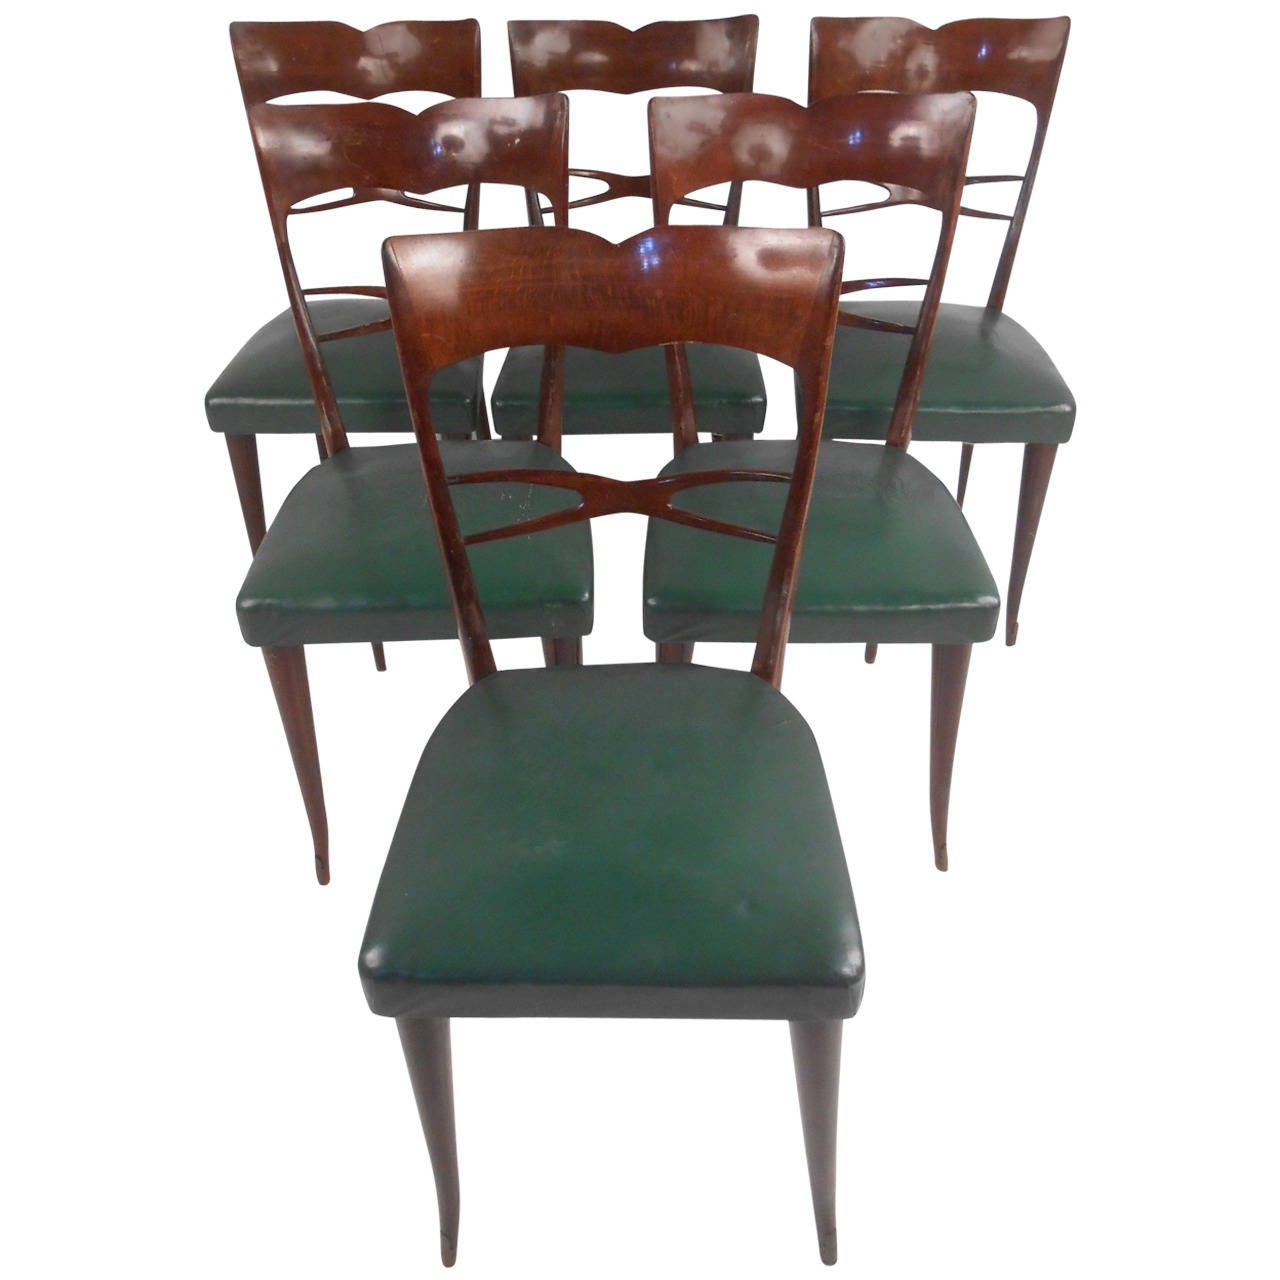 style mid century modern italian dining chairs for sale at 1stdibs